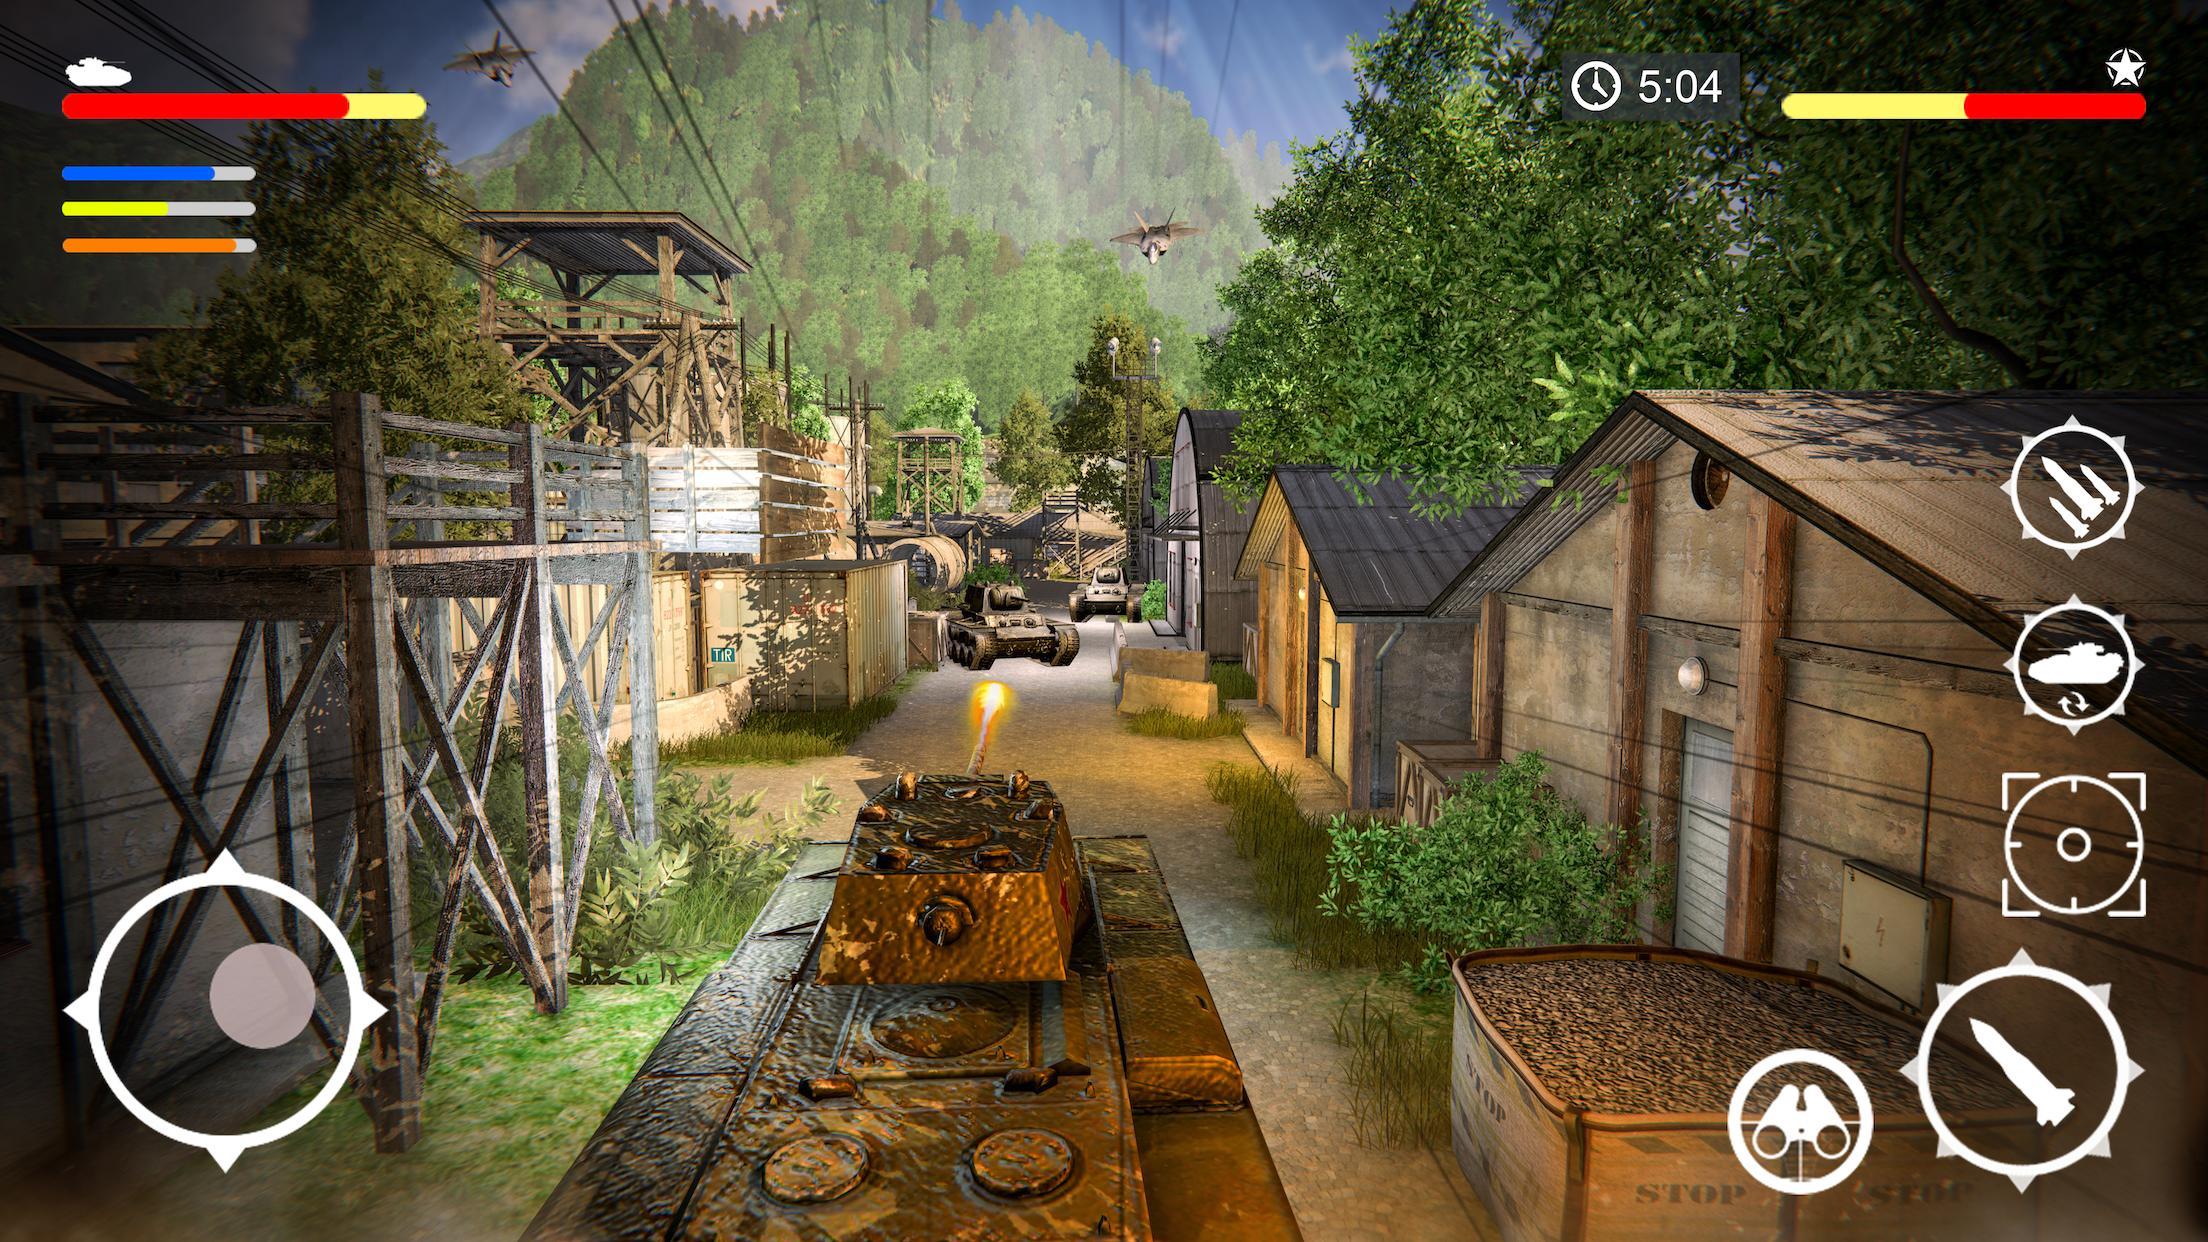 Tank Games 2020 Free Tank Battle Army Combat Games 1.3 Screenshot 7